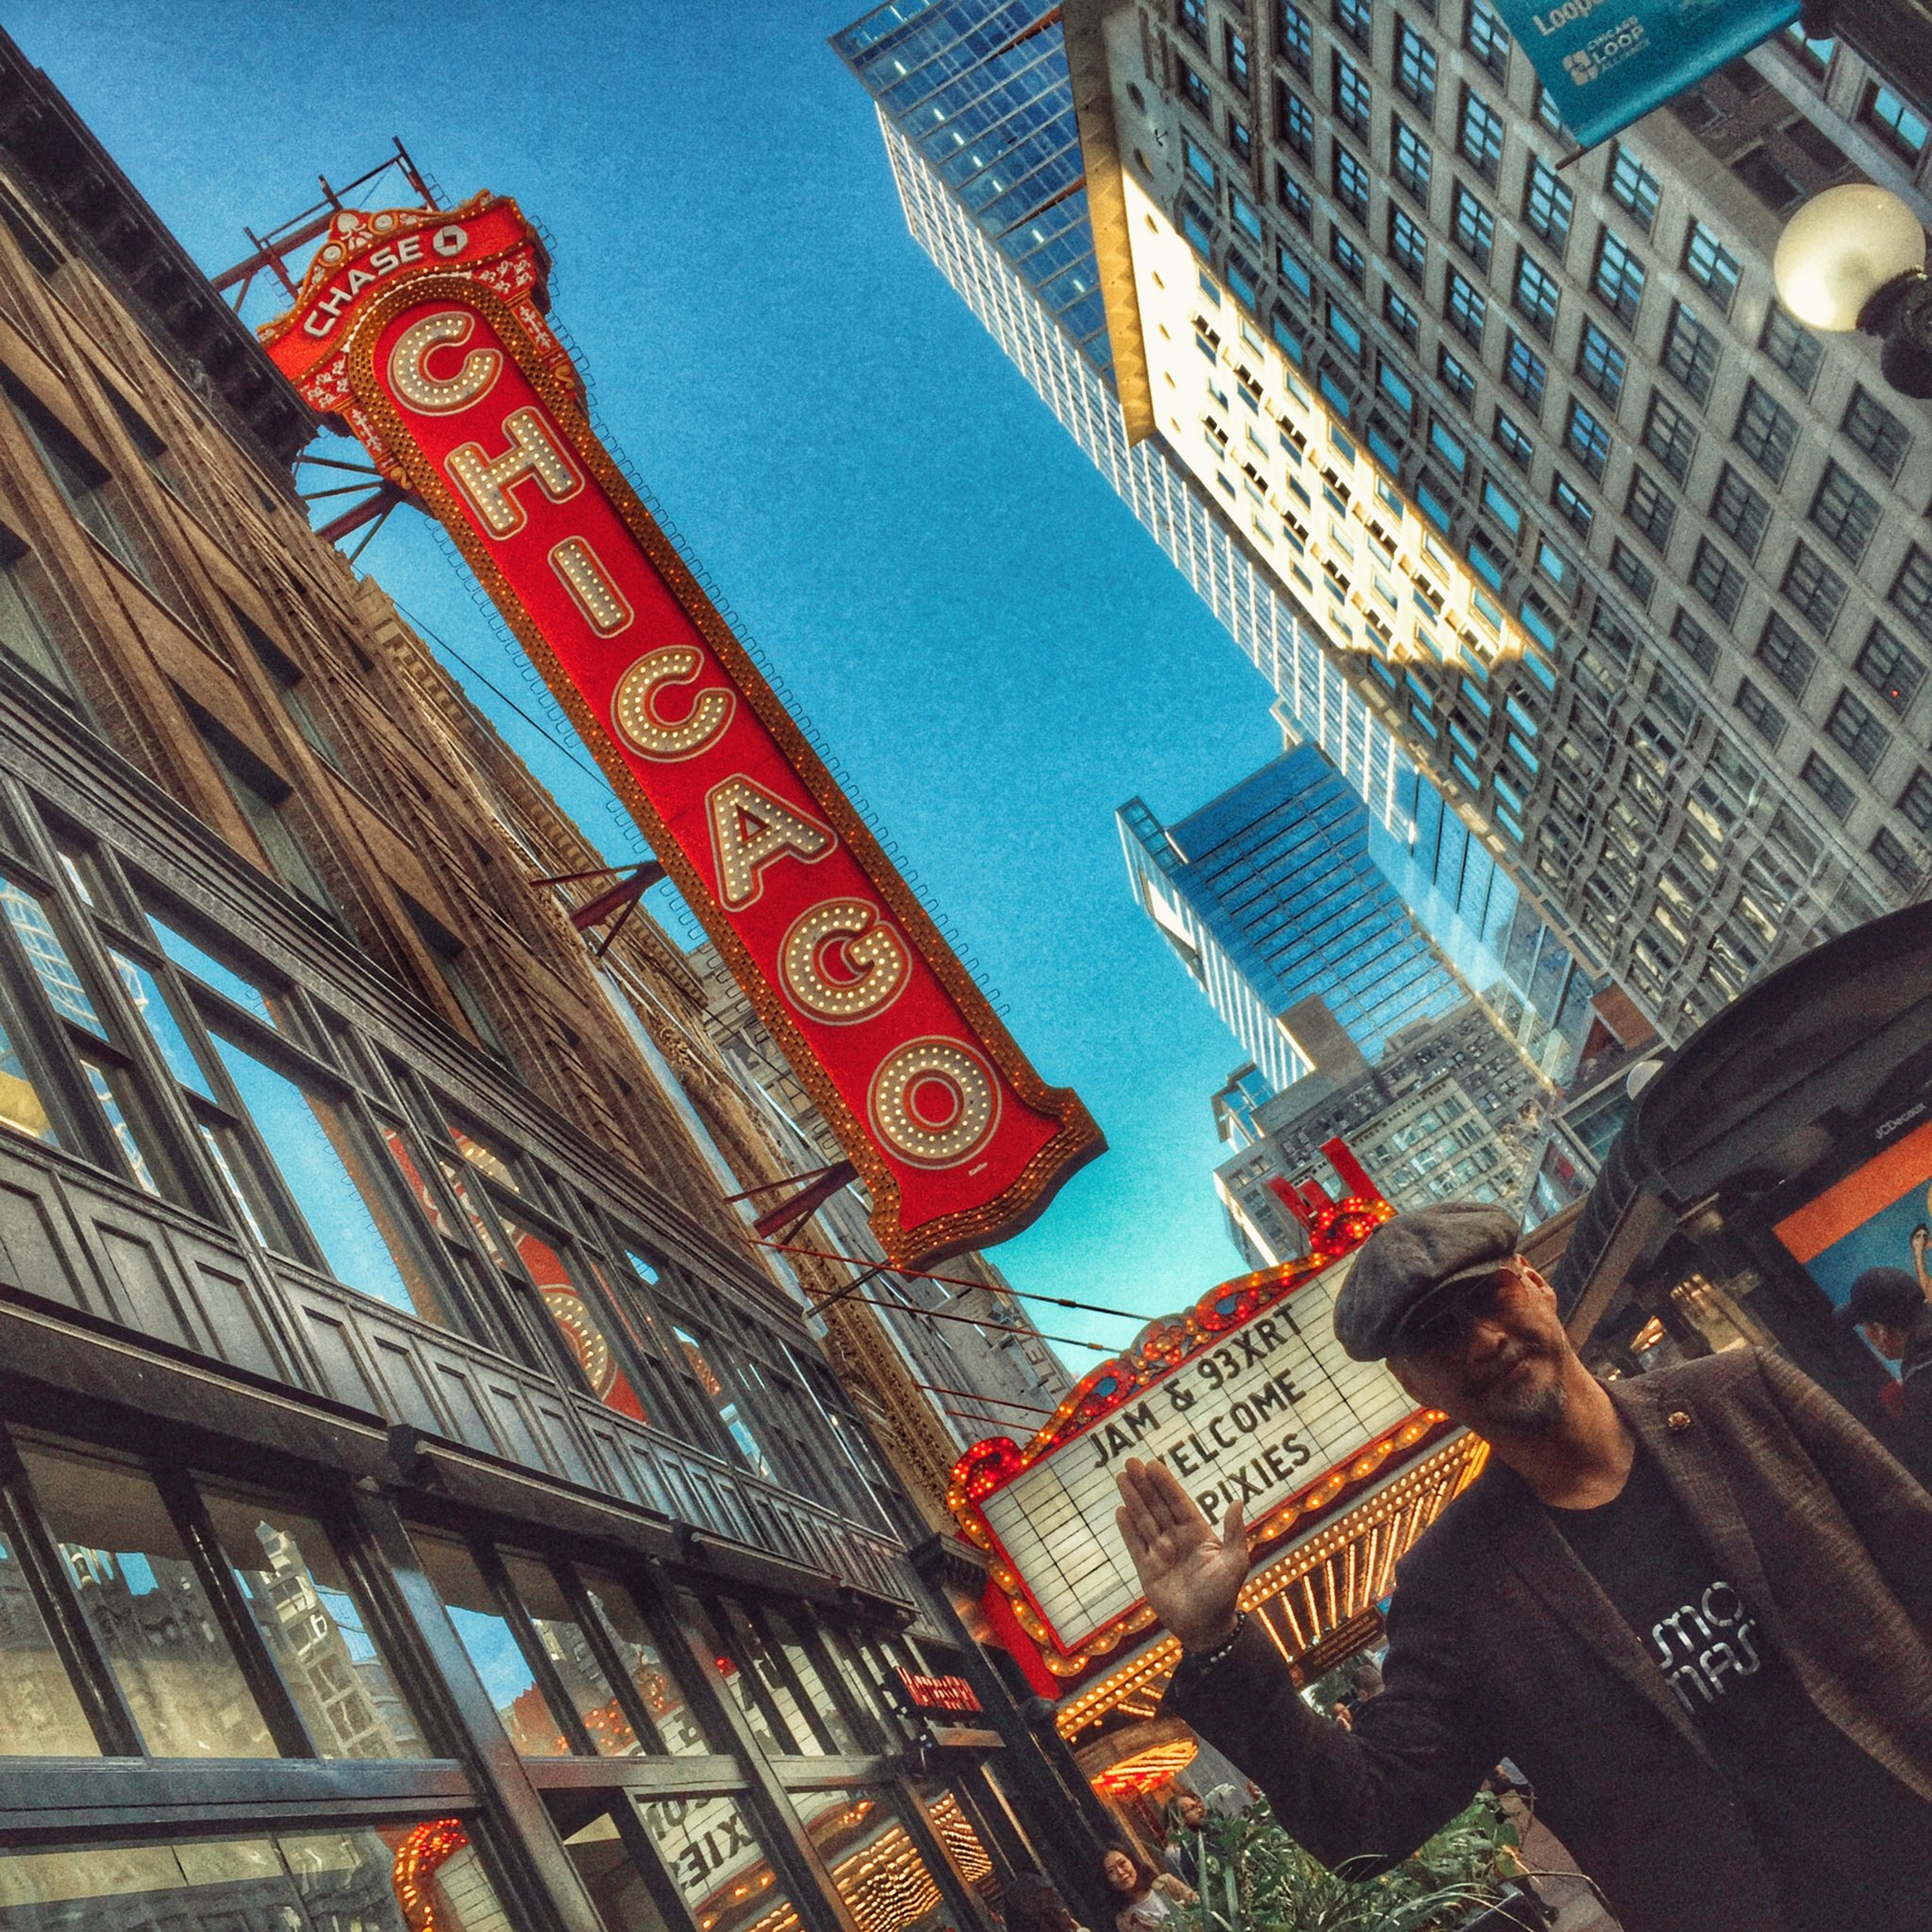 Great to be back in Chi town @ChicagoTheatre https://t.co/CSPsmeRaXT